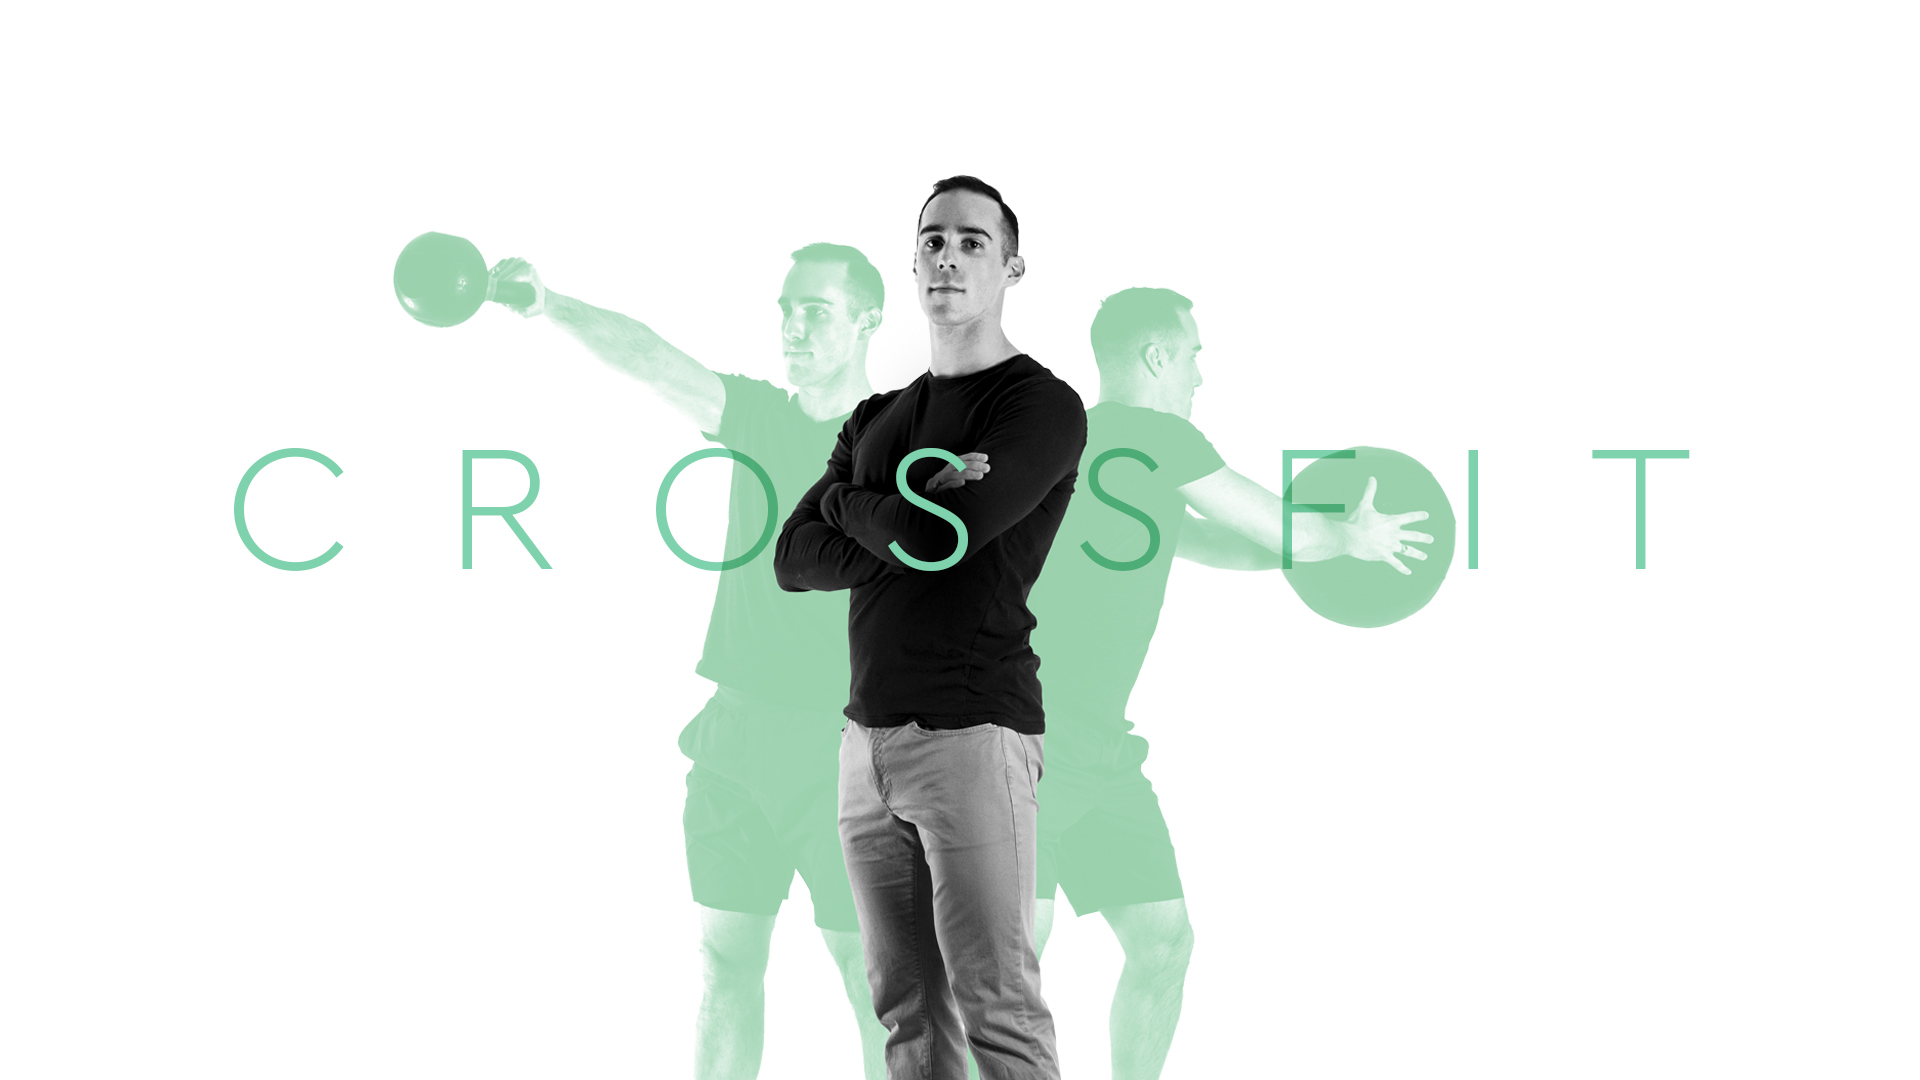 A man poses in front of silhouette images of himself doing kettlebell and conditioning CrossFit exercises